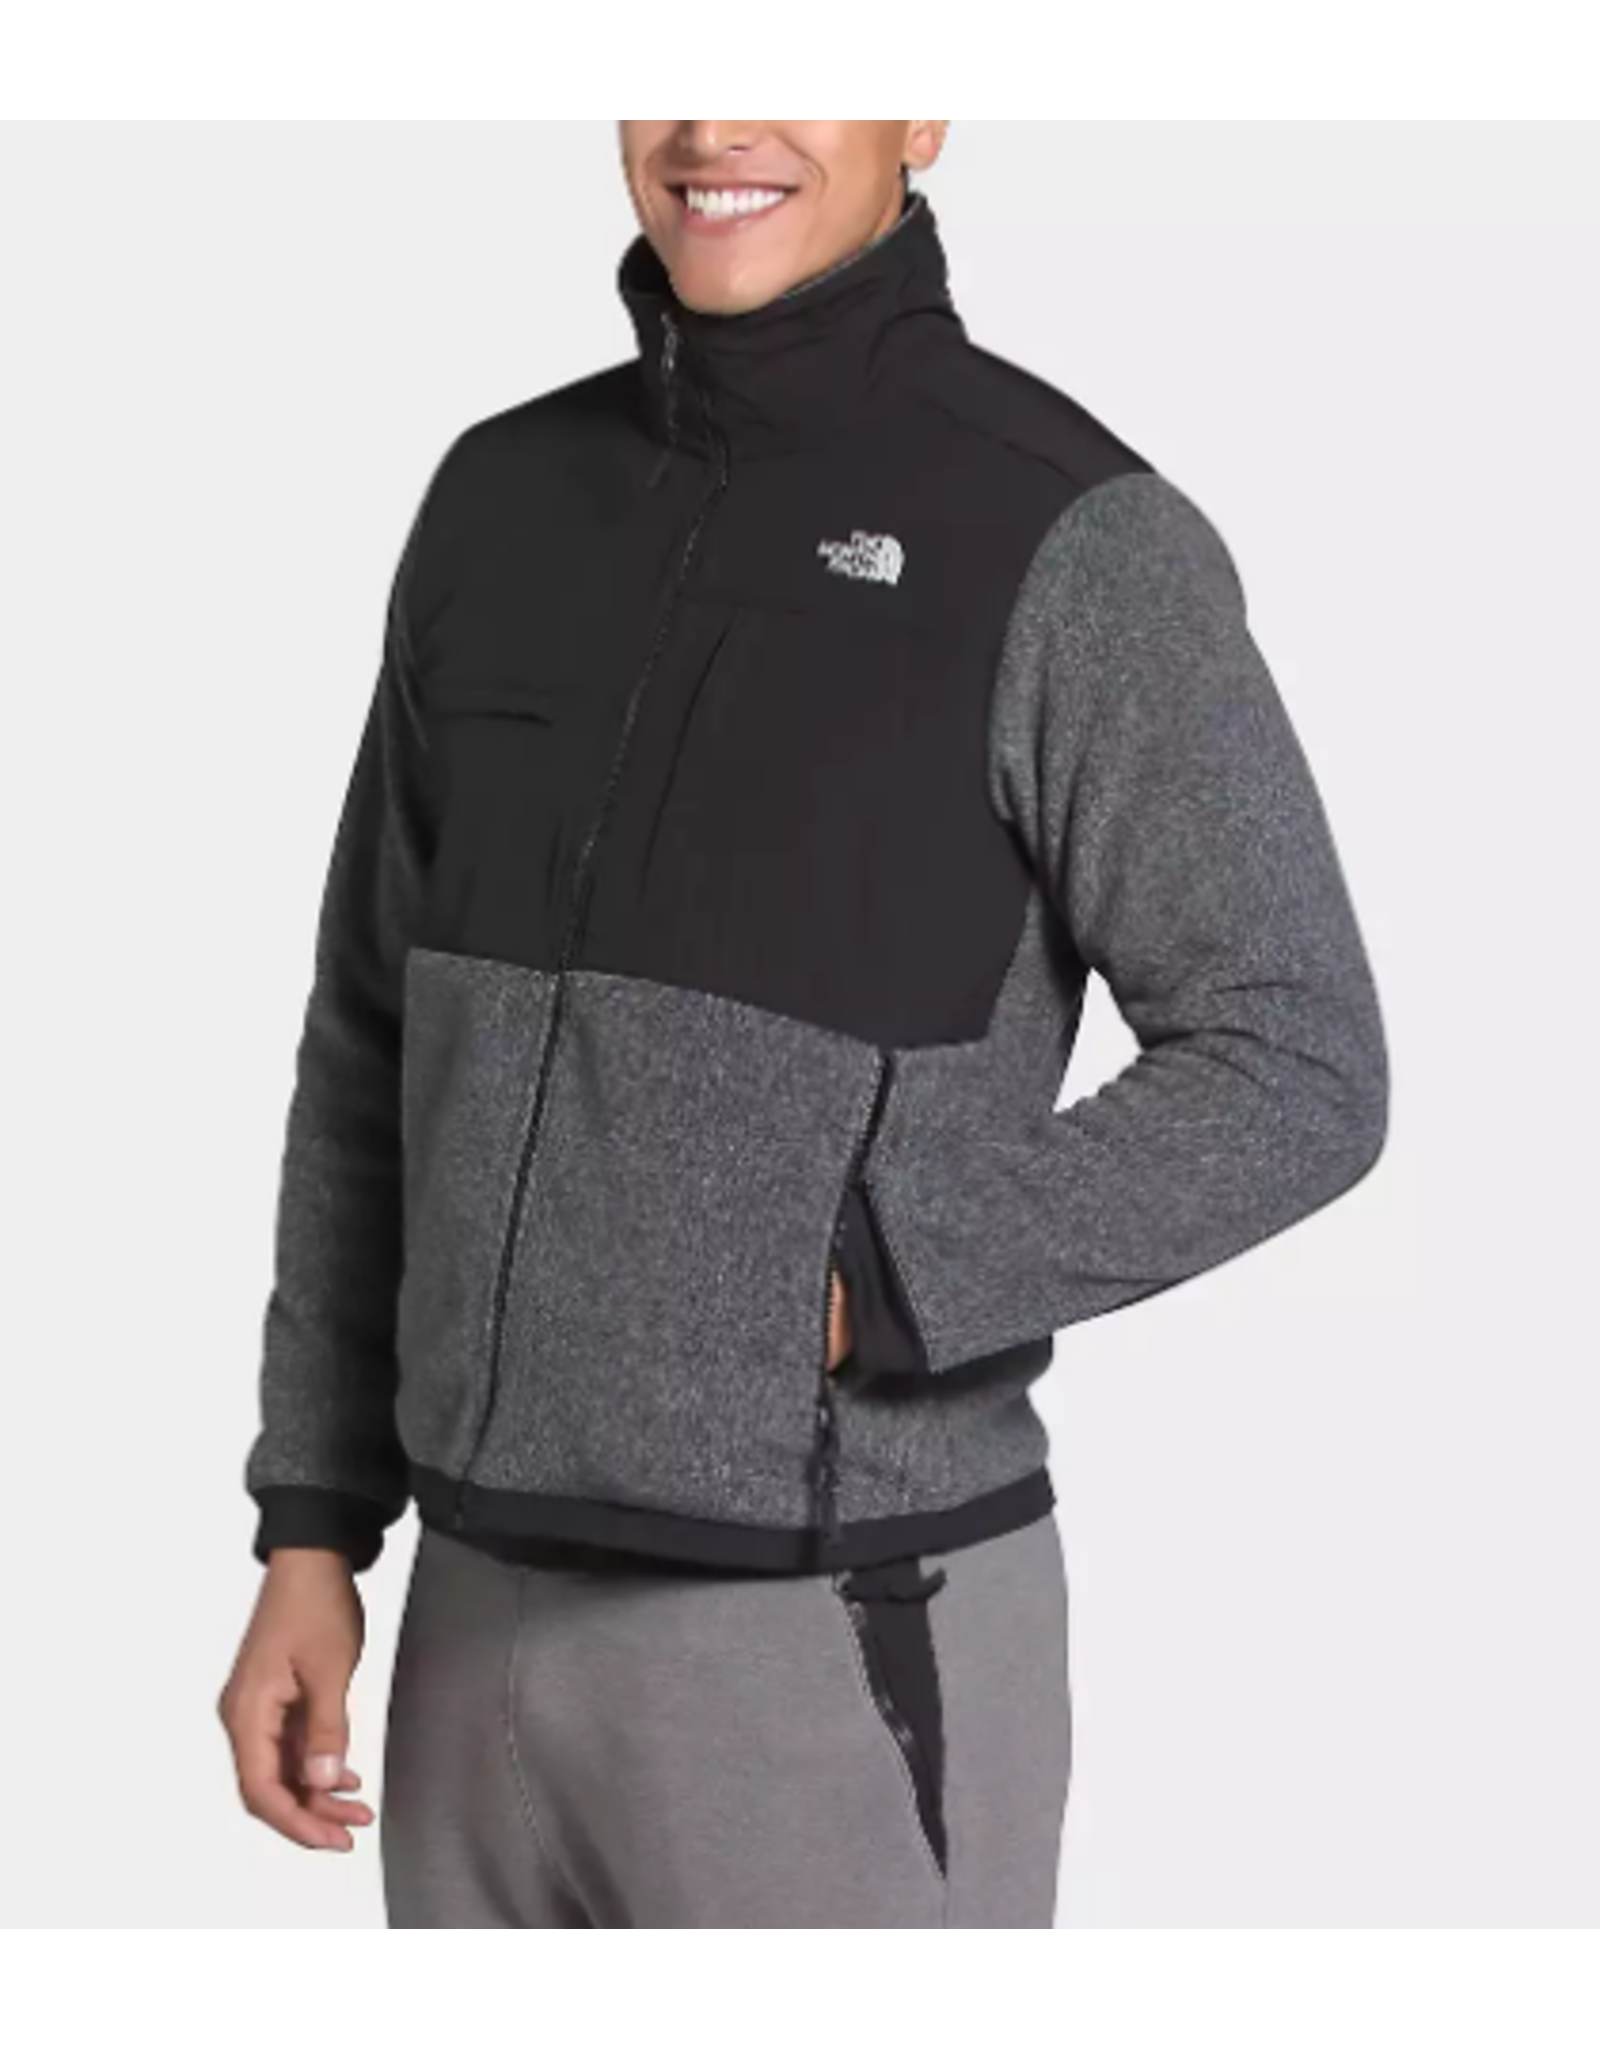 North Face Denali 2 Jacket - Charcoal Heather